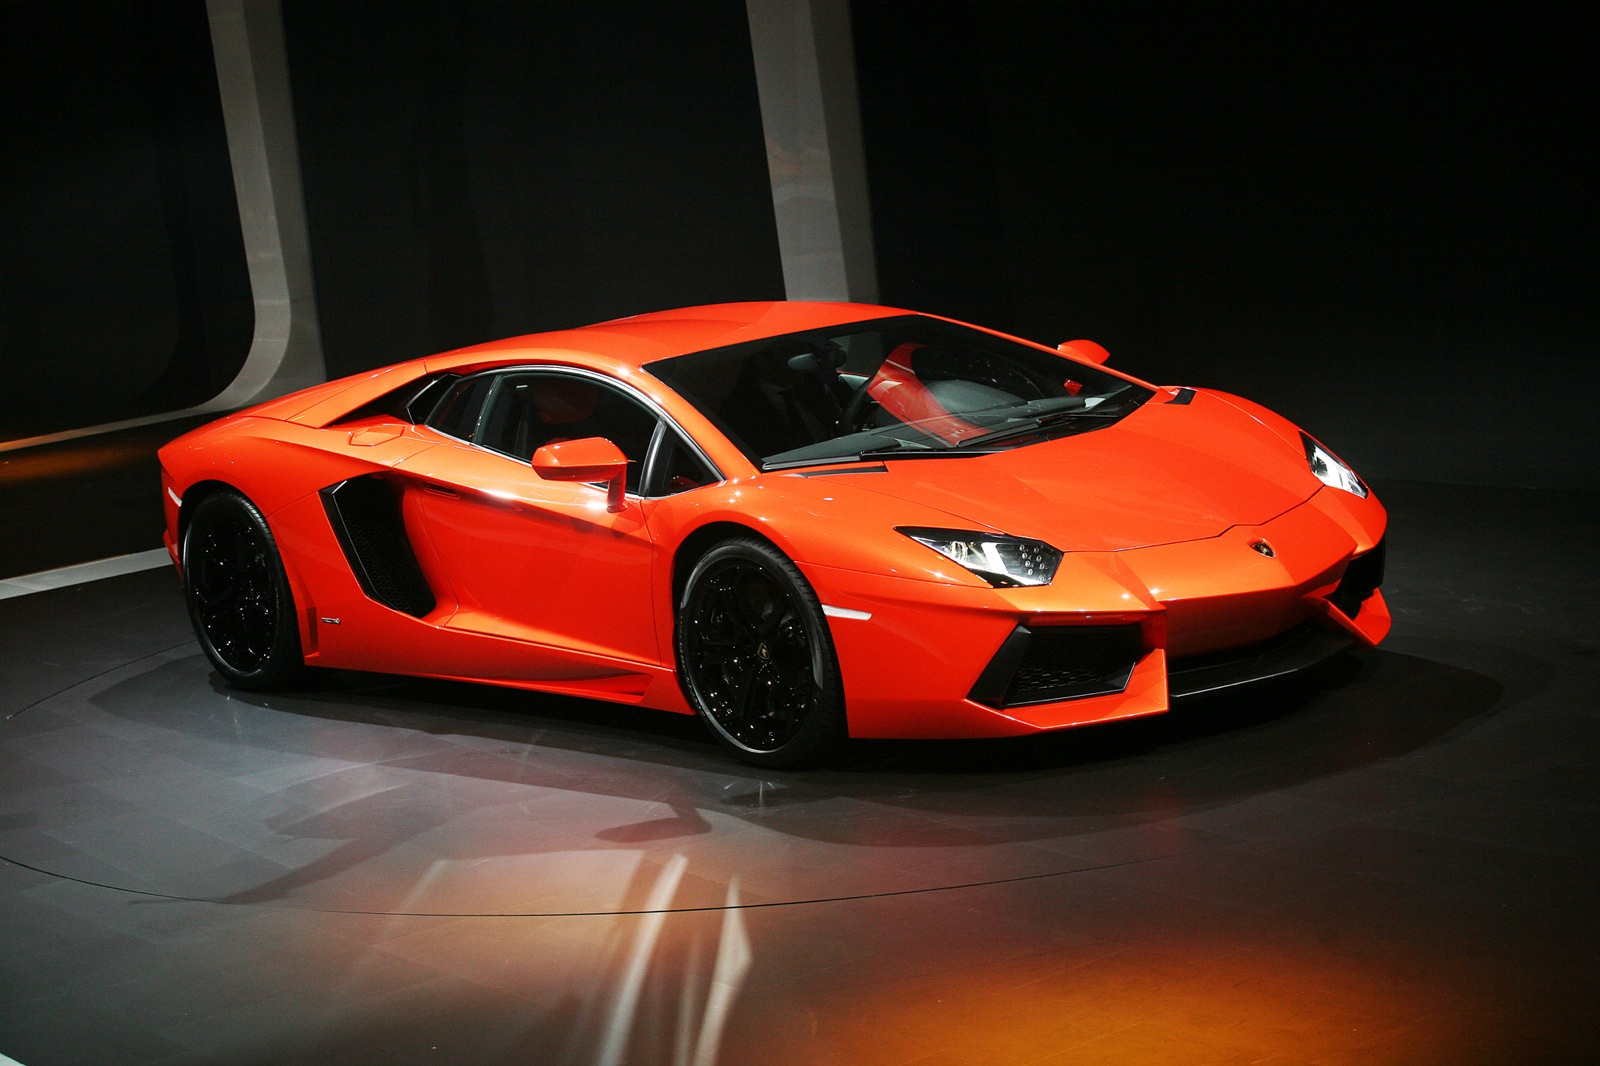 2013 Lamborghini Aventador Review, Ratings, Specs, Prices, and ... on bmw vs ferrari, saab vs ferrari, r8 vs ferrari, benz vs ferrari, lamborghini aventador, koenigsegg vs ferrari, ford vs ferrari, bugatti vs ferrari, mustang vs ferrari, pagani vs ferrari, lamborghini diablo, maserati vs ferrari, aston martin vs ferrari, lamborghini gallardo lp 570-4 superleggera, corvette vs ferrari, vespa vs ferrari, lamborghini veneno, porsche vs ferrari, exotic ferrari,